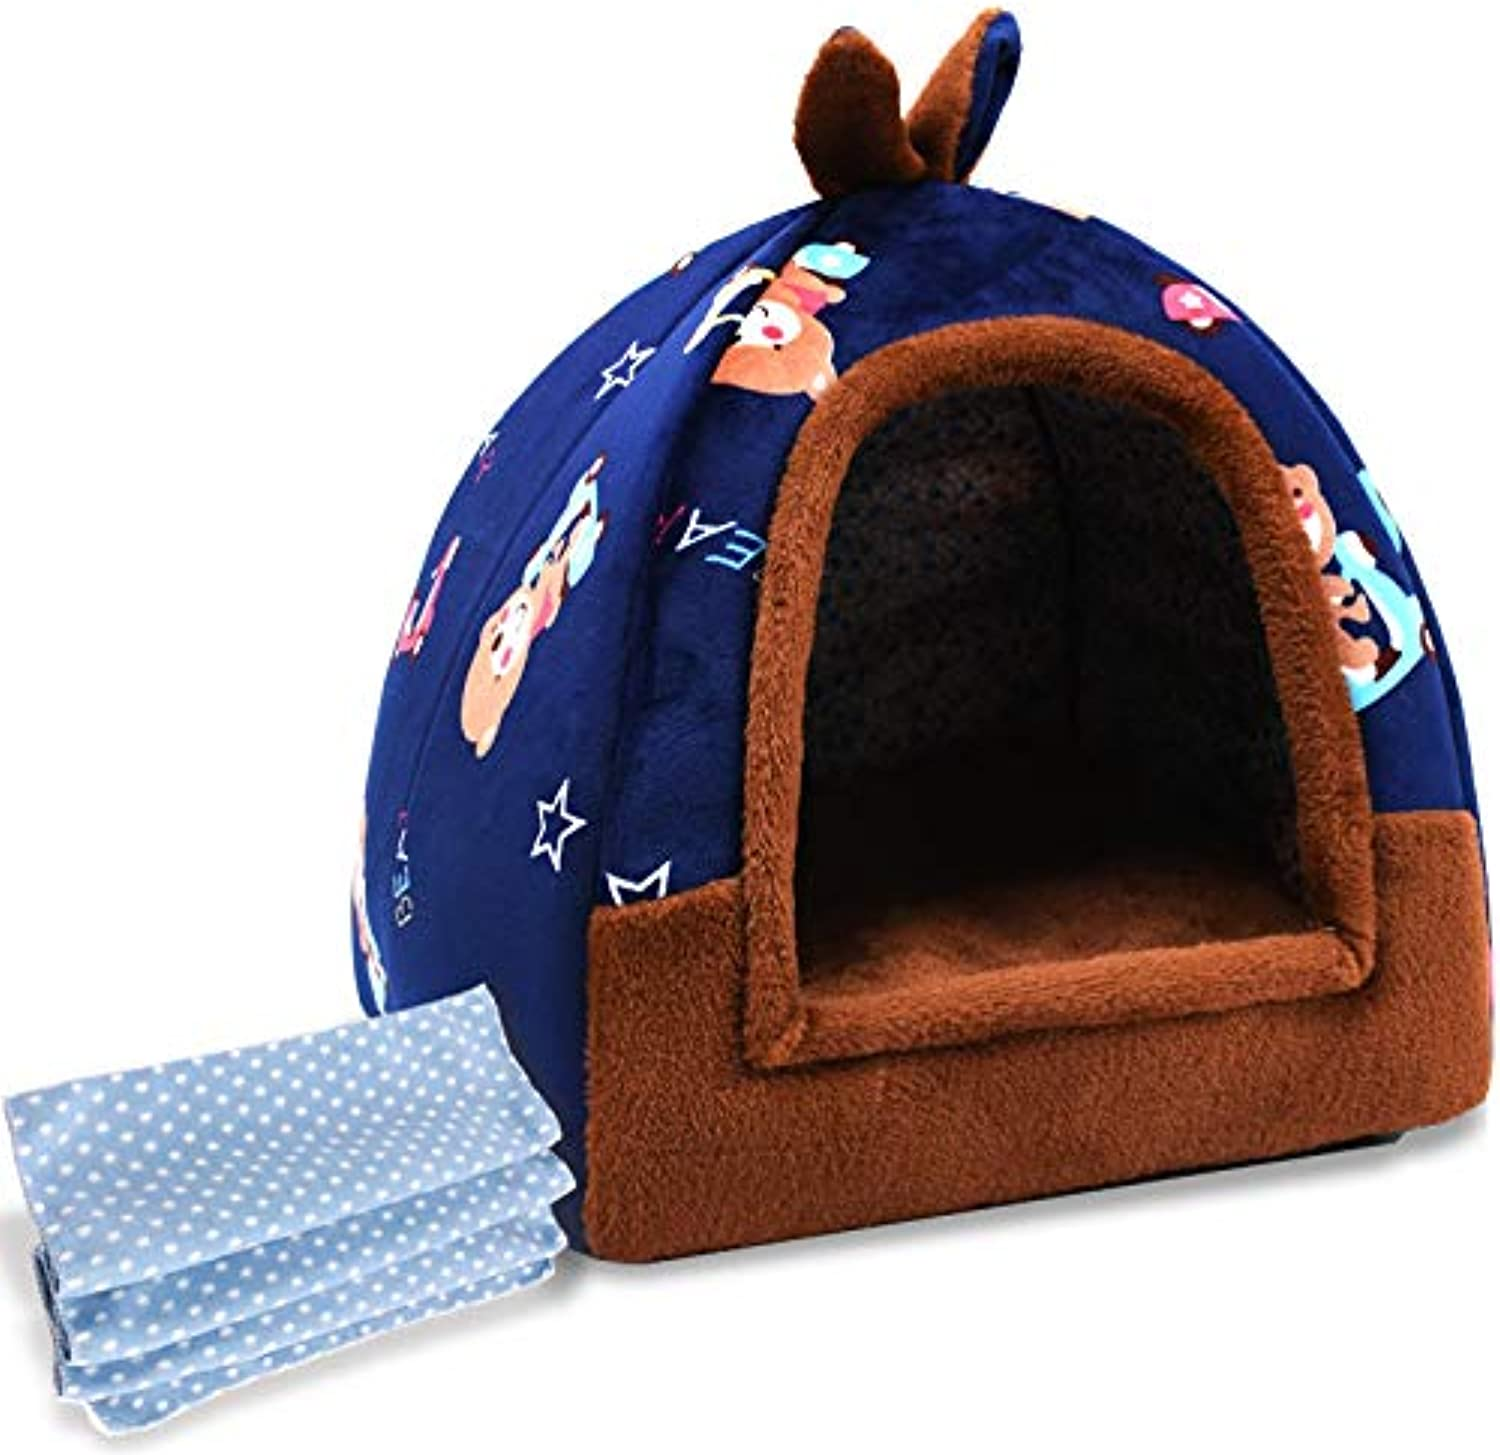 YYYPET Quattro stagioni, doppia, calda, blu 3,38X38X37CM caldo Pet Soft Nest Kennel Puppy House Plush Dog Cat Pet indoor House e Sofa Folgeble Pet Supplies pet Sleeping Bag